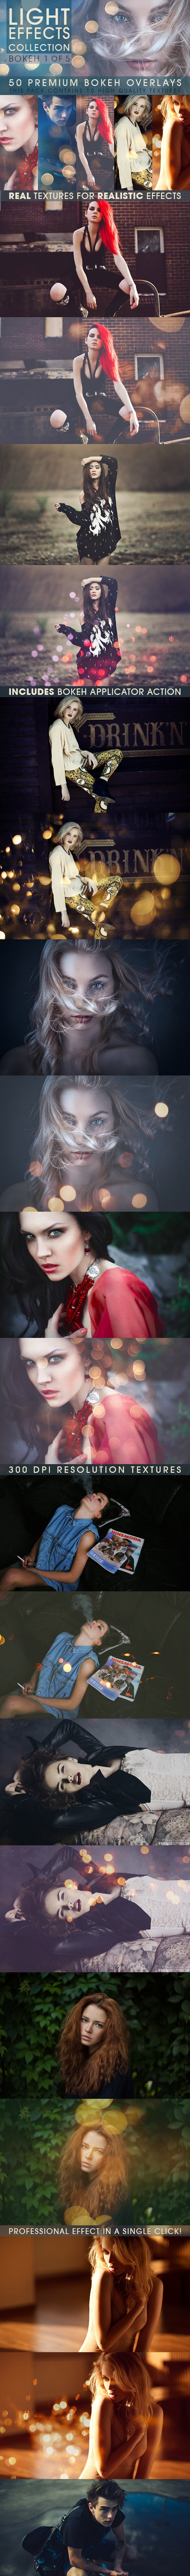 Bokeh Overlays Vol.1 - Photo Effects Actions